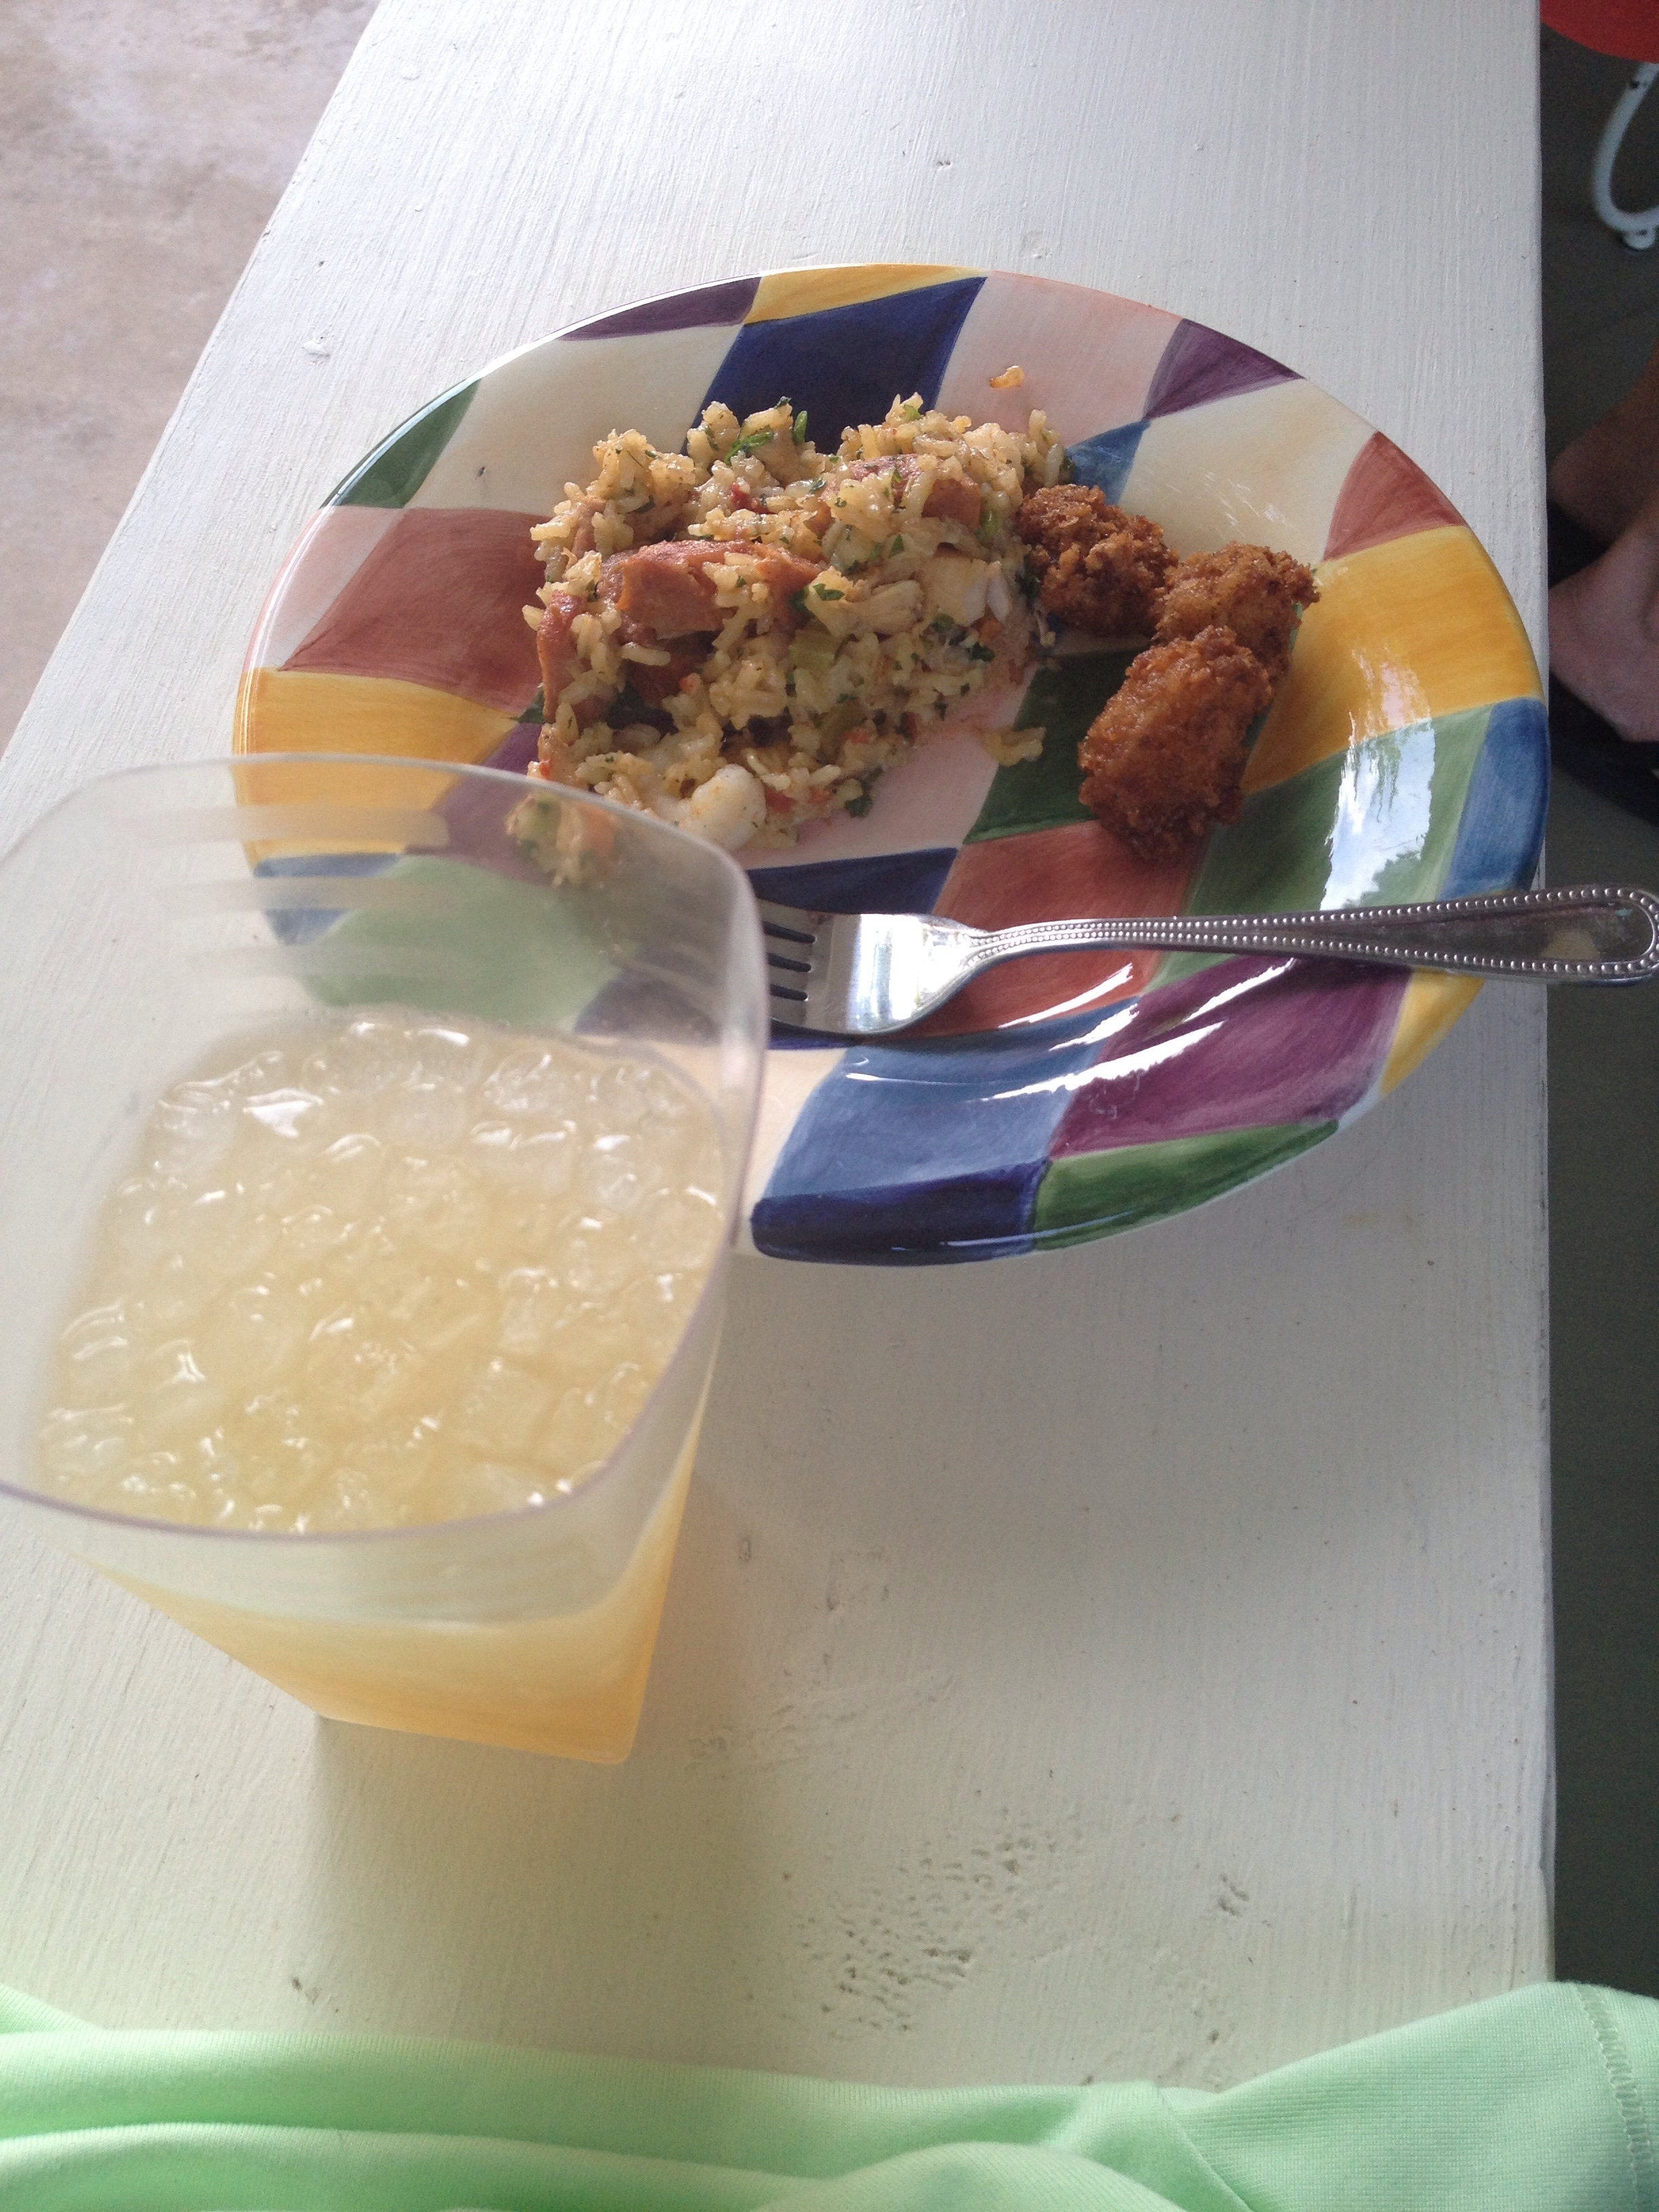 Jim's famous margarita made with agave (I crave this beverage regularly). And his jambalaya and fried crocodile tail.